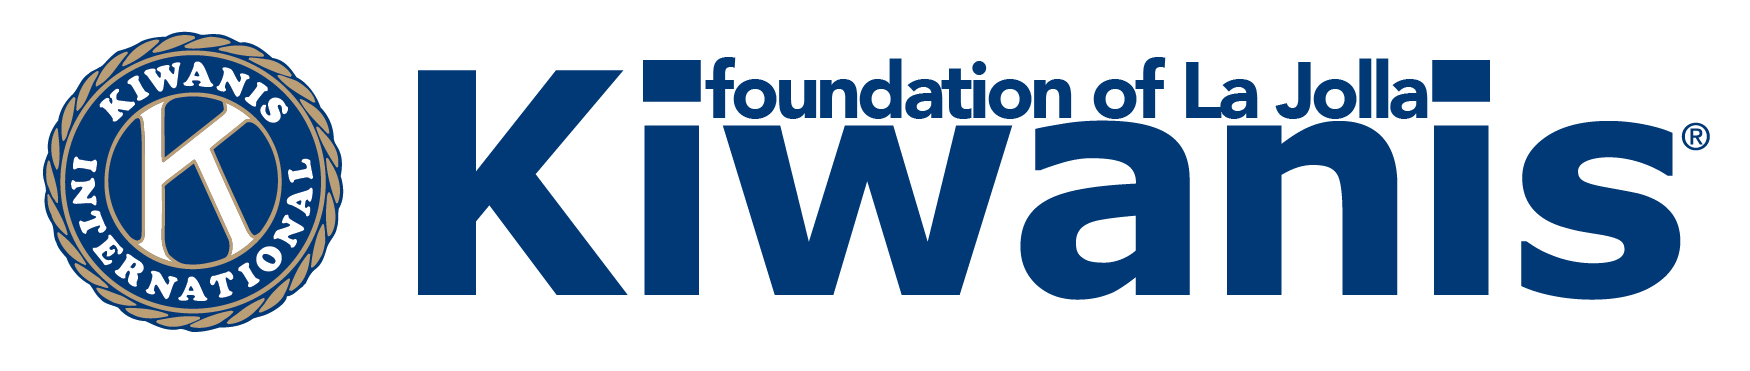 Kiwanis Foundation of La Jolla Logo